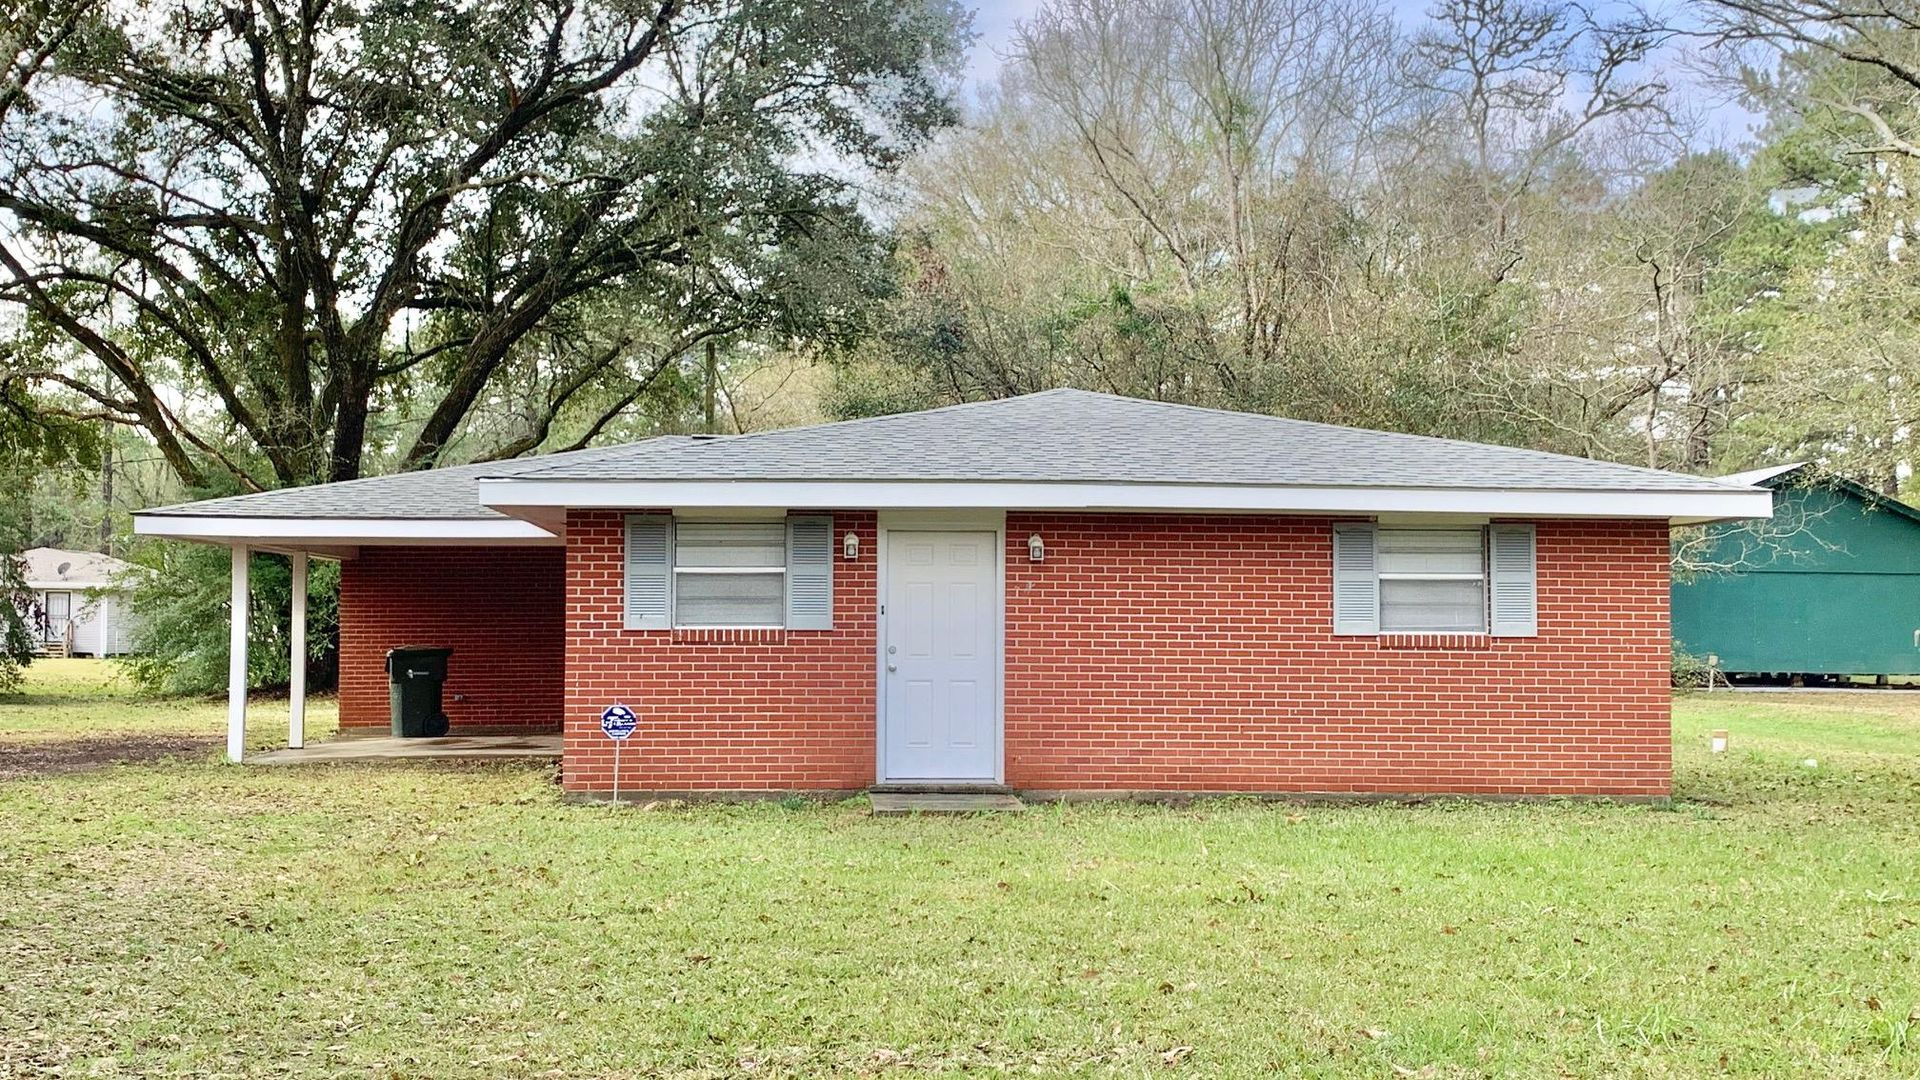 Houses For Rent in Hammond LA - 56 Homes | Zillow on shopping in hammond la, mobile homes in hammond la, weather in hammond la, hotels in hammond la,